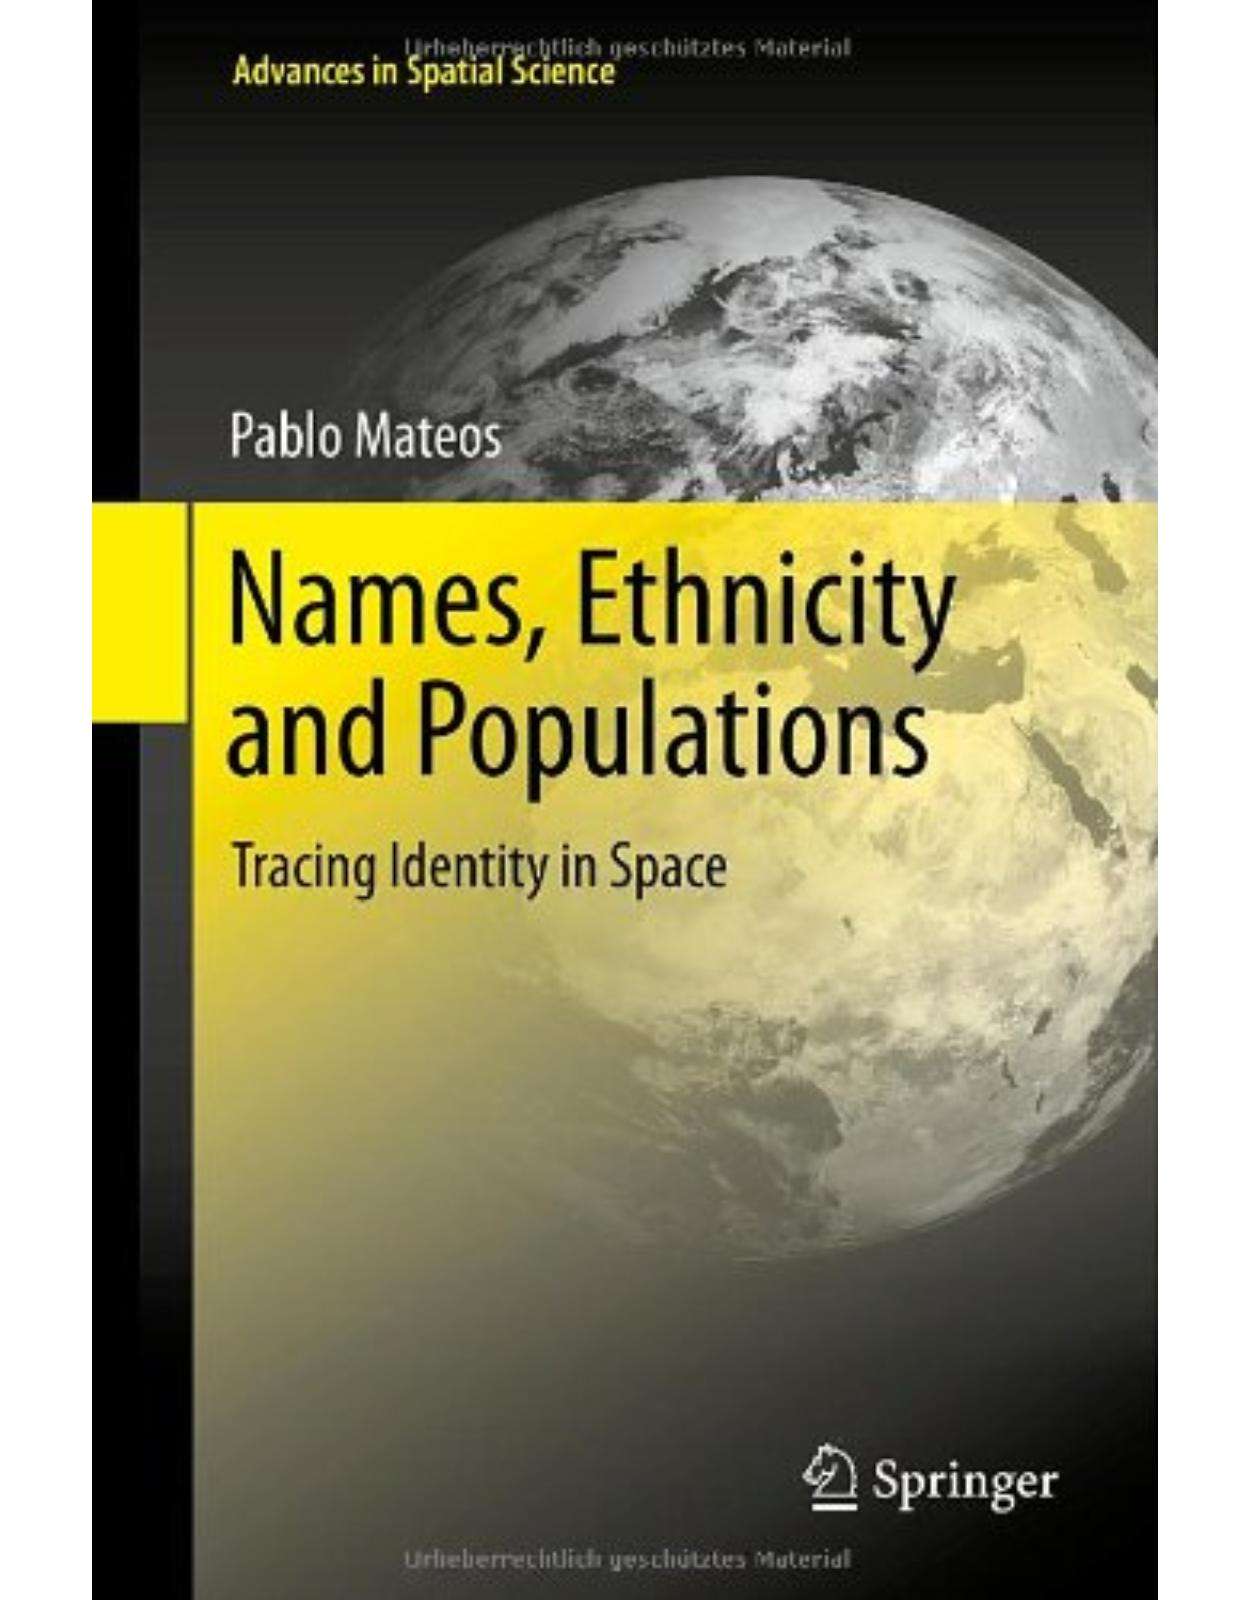 Names, Ethnicity and Populations